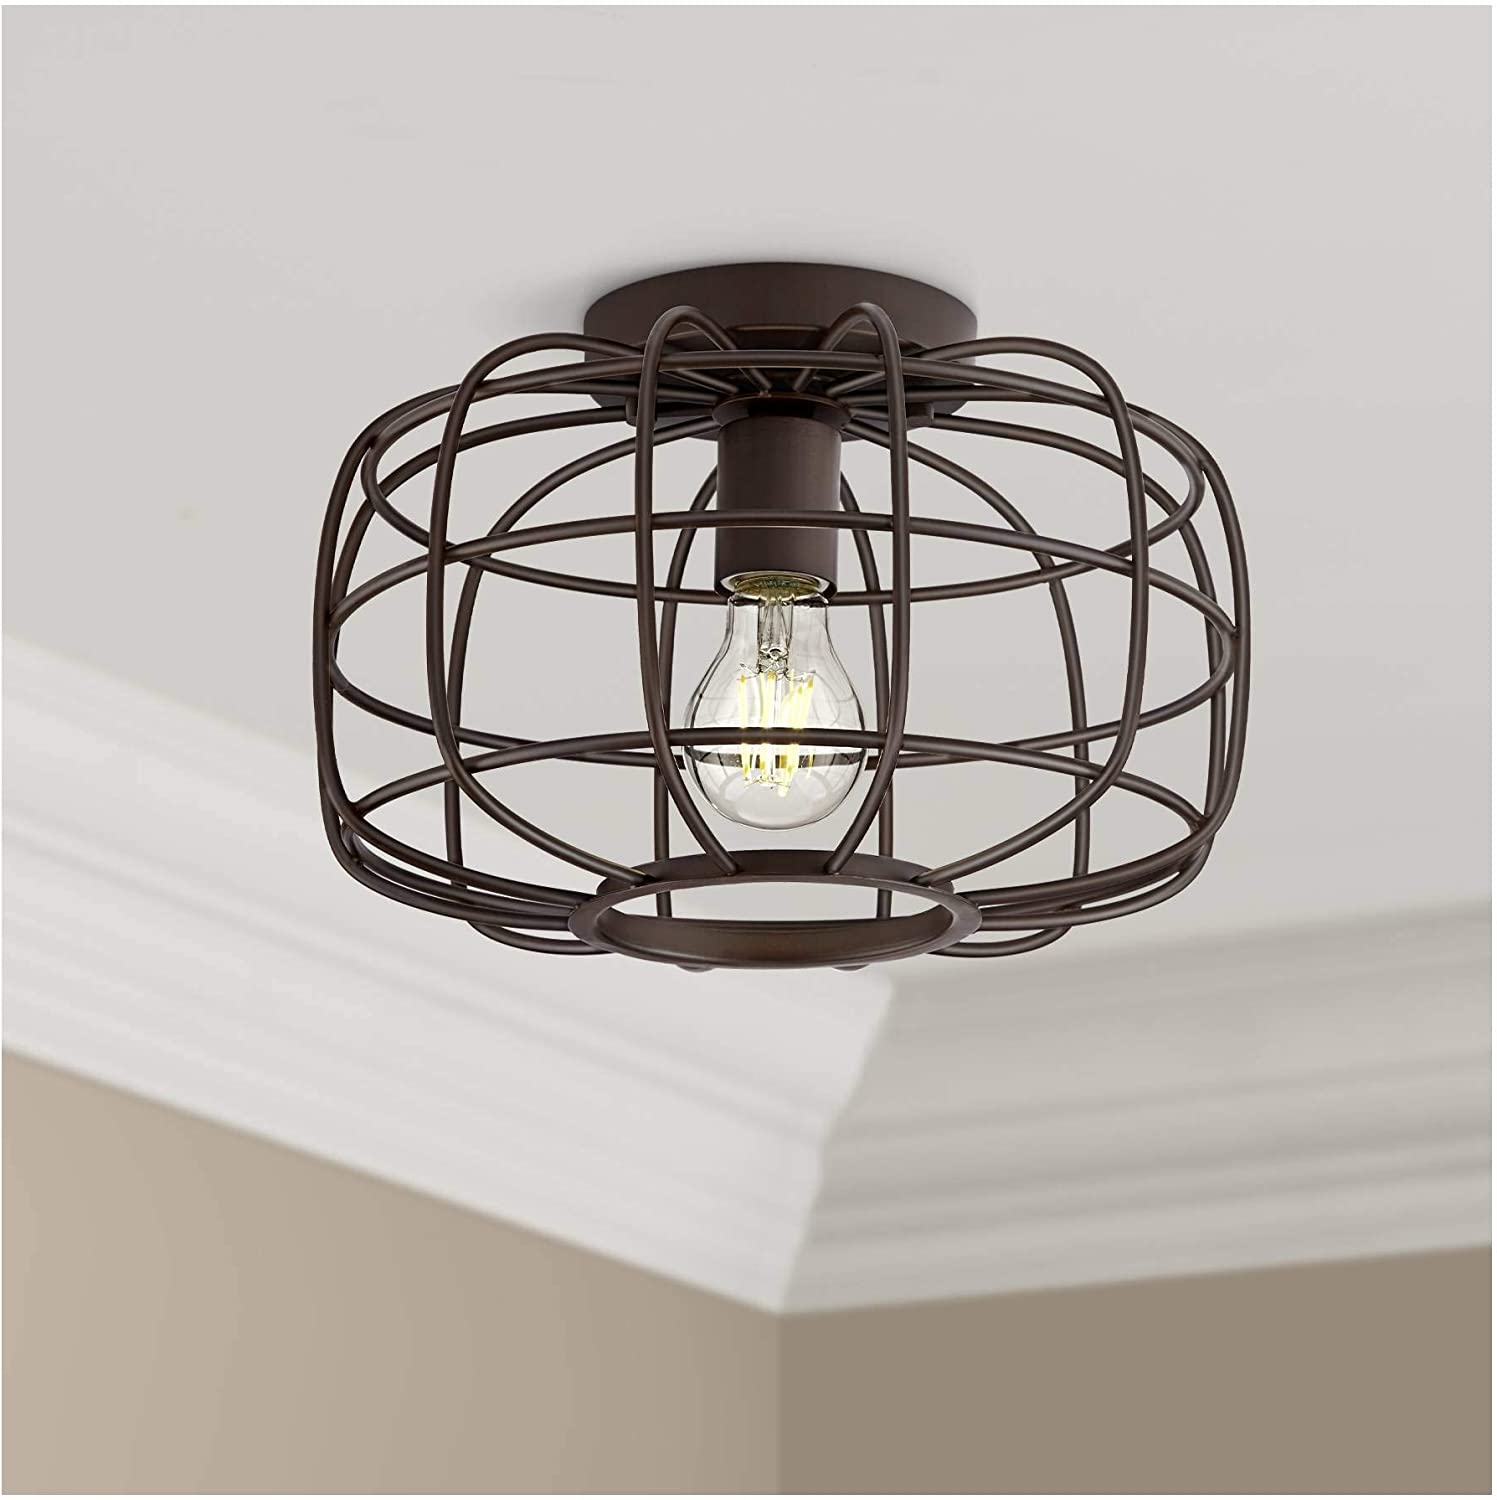 Epstein Farmhouse Rustic Industrial Close to Ceiling Light Flush Mount Fixture Oil Rubbed Bronze 12